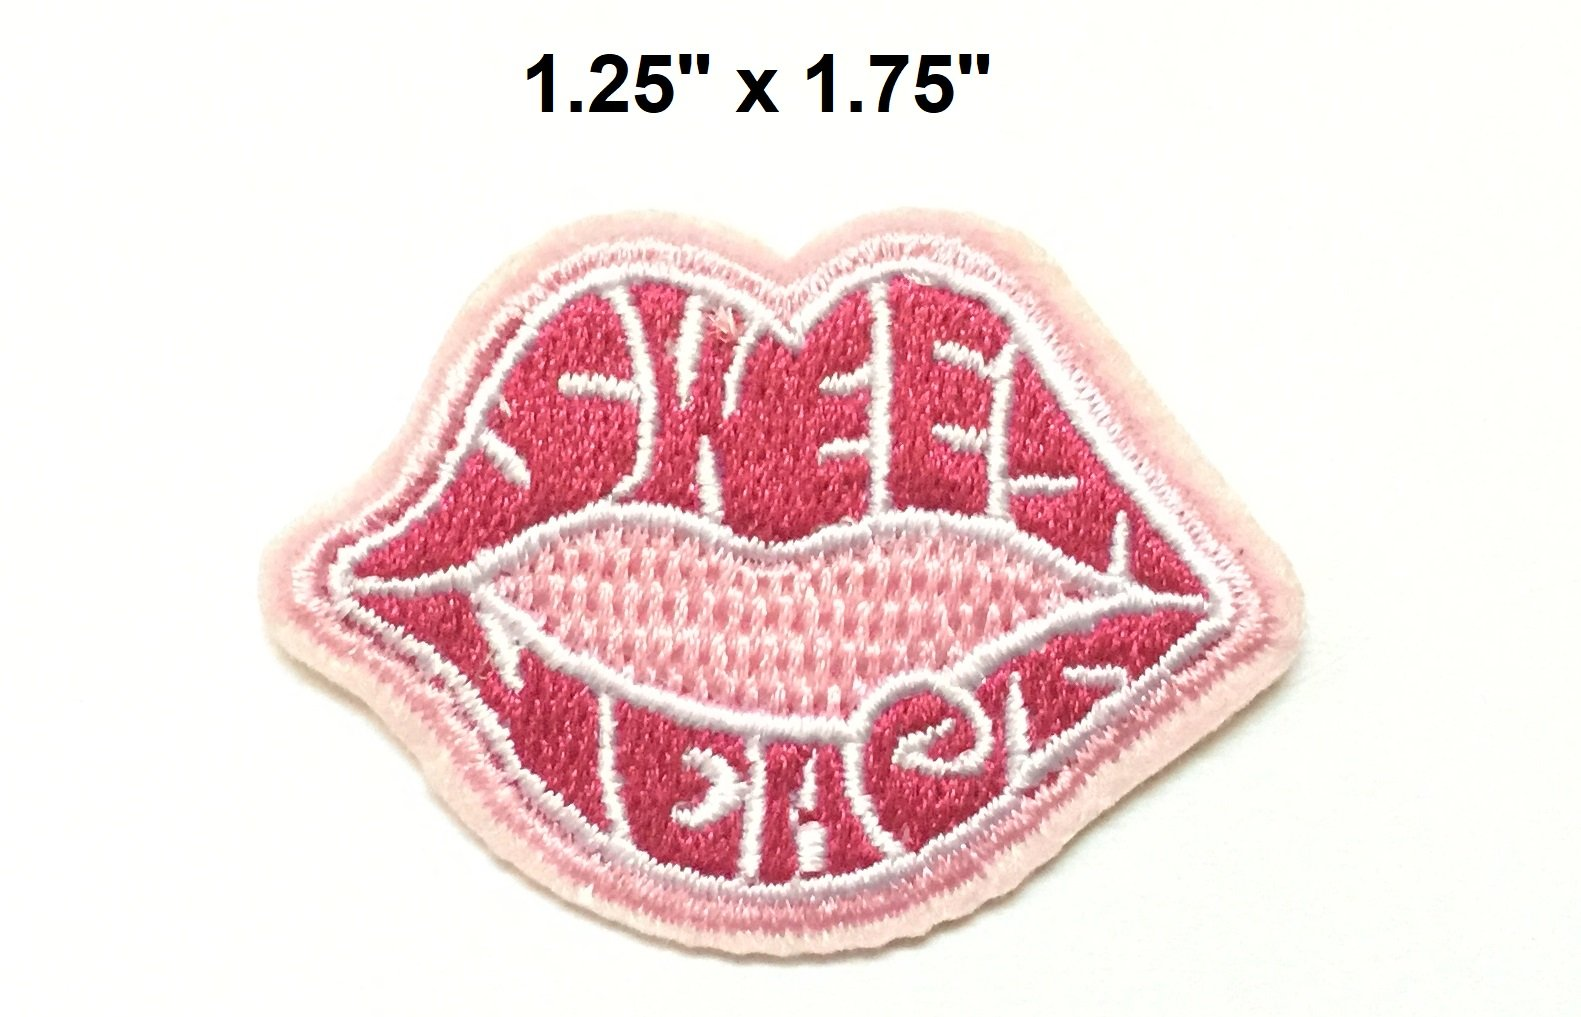 Set patch of Iron on Pink Patches for Women or Girls #13,Heart patch, Mouth patch, Flamingo Patch, Lipstick patch Patches Iron On Embroidery Patch Badges Applique Clothes by BossBee